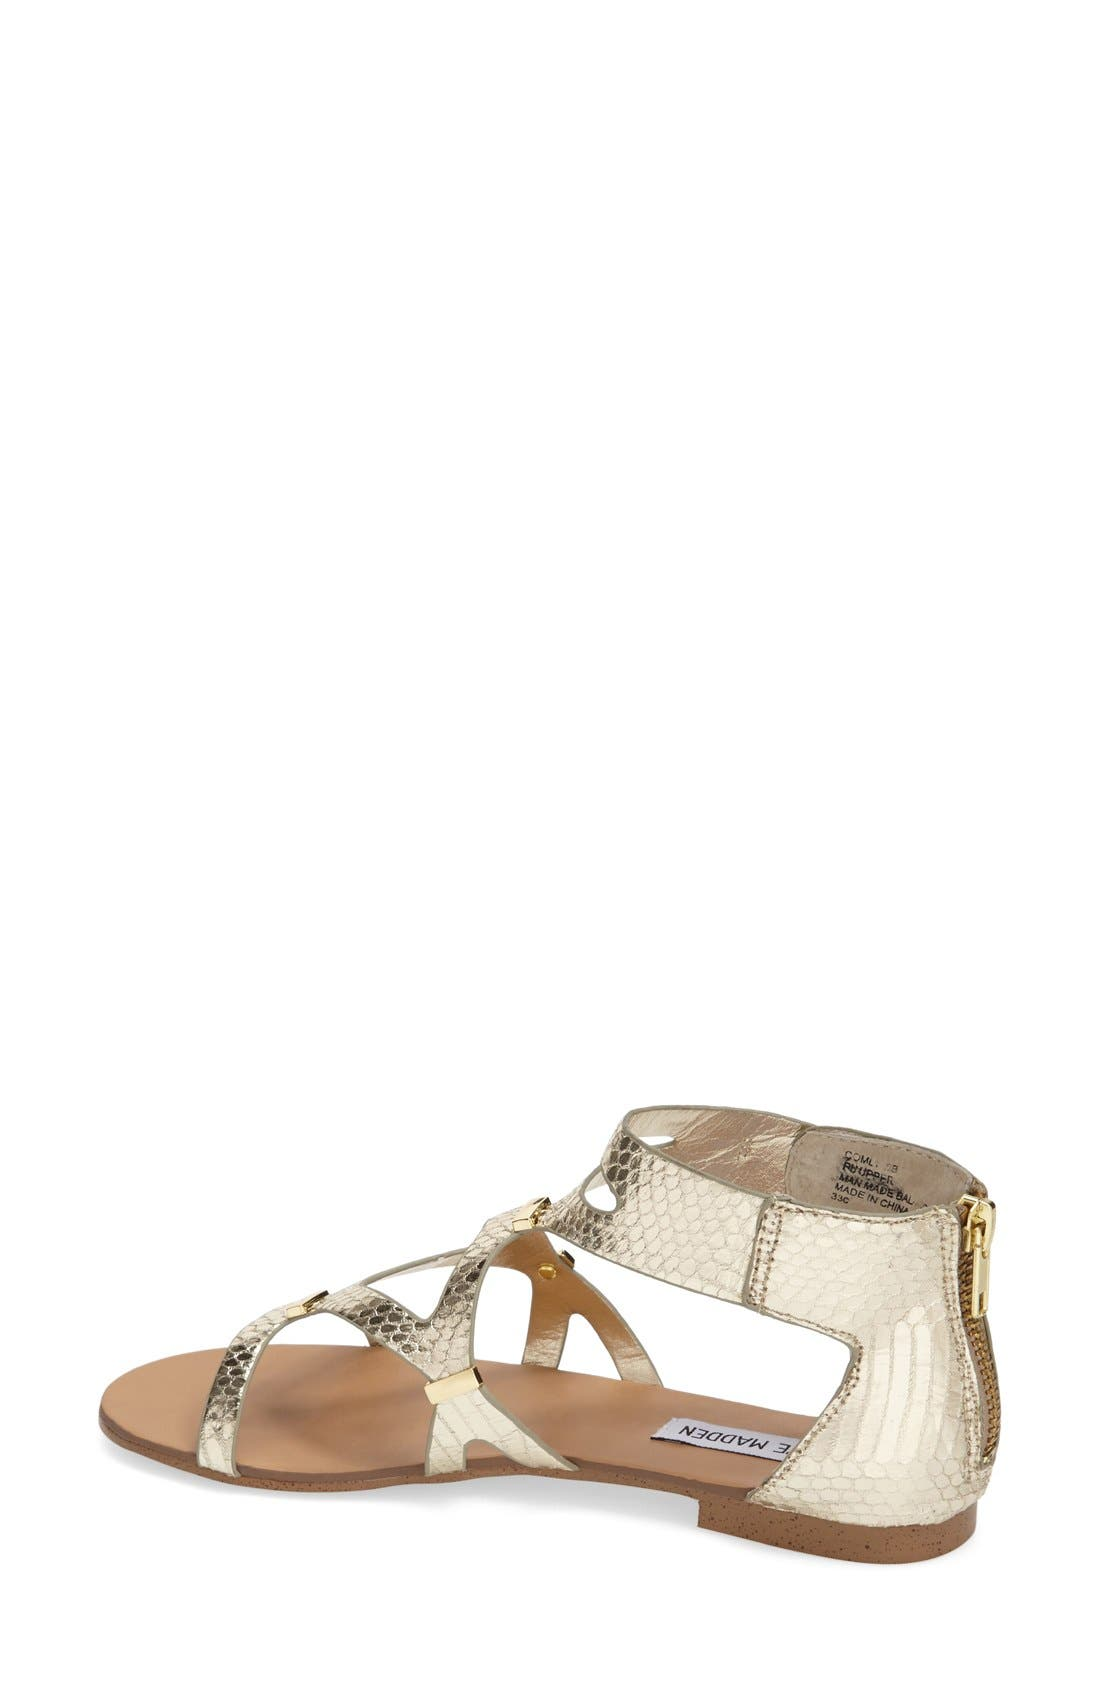 Alternate Image 3  - Steve Madden 'Comly' Gladiator Sandal (Women)